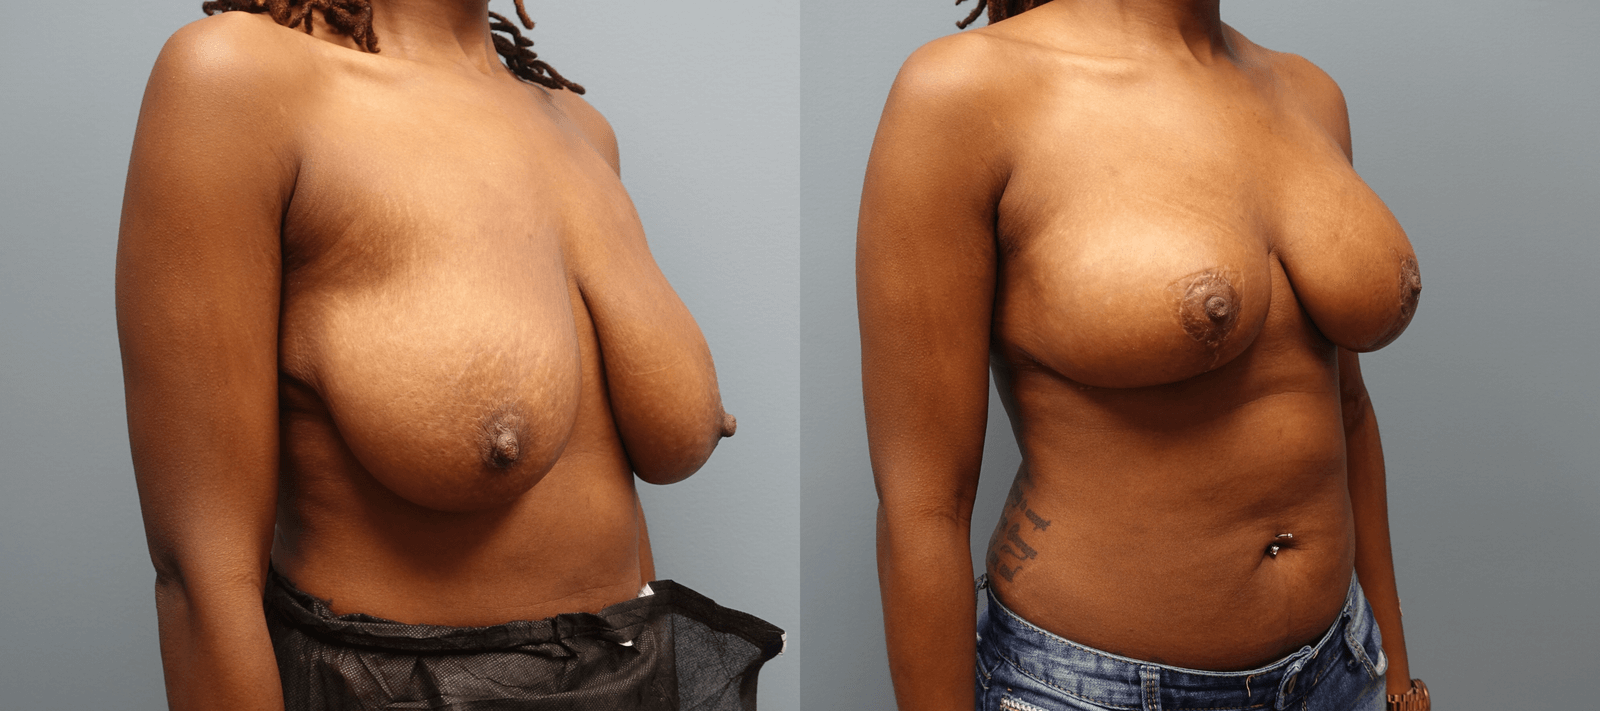 Before and after Auto Augmentation 32 year old 2 1/2 yrs after the procedure. Breast Augmentation